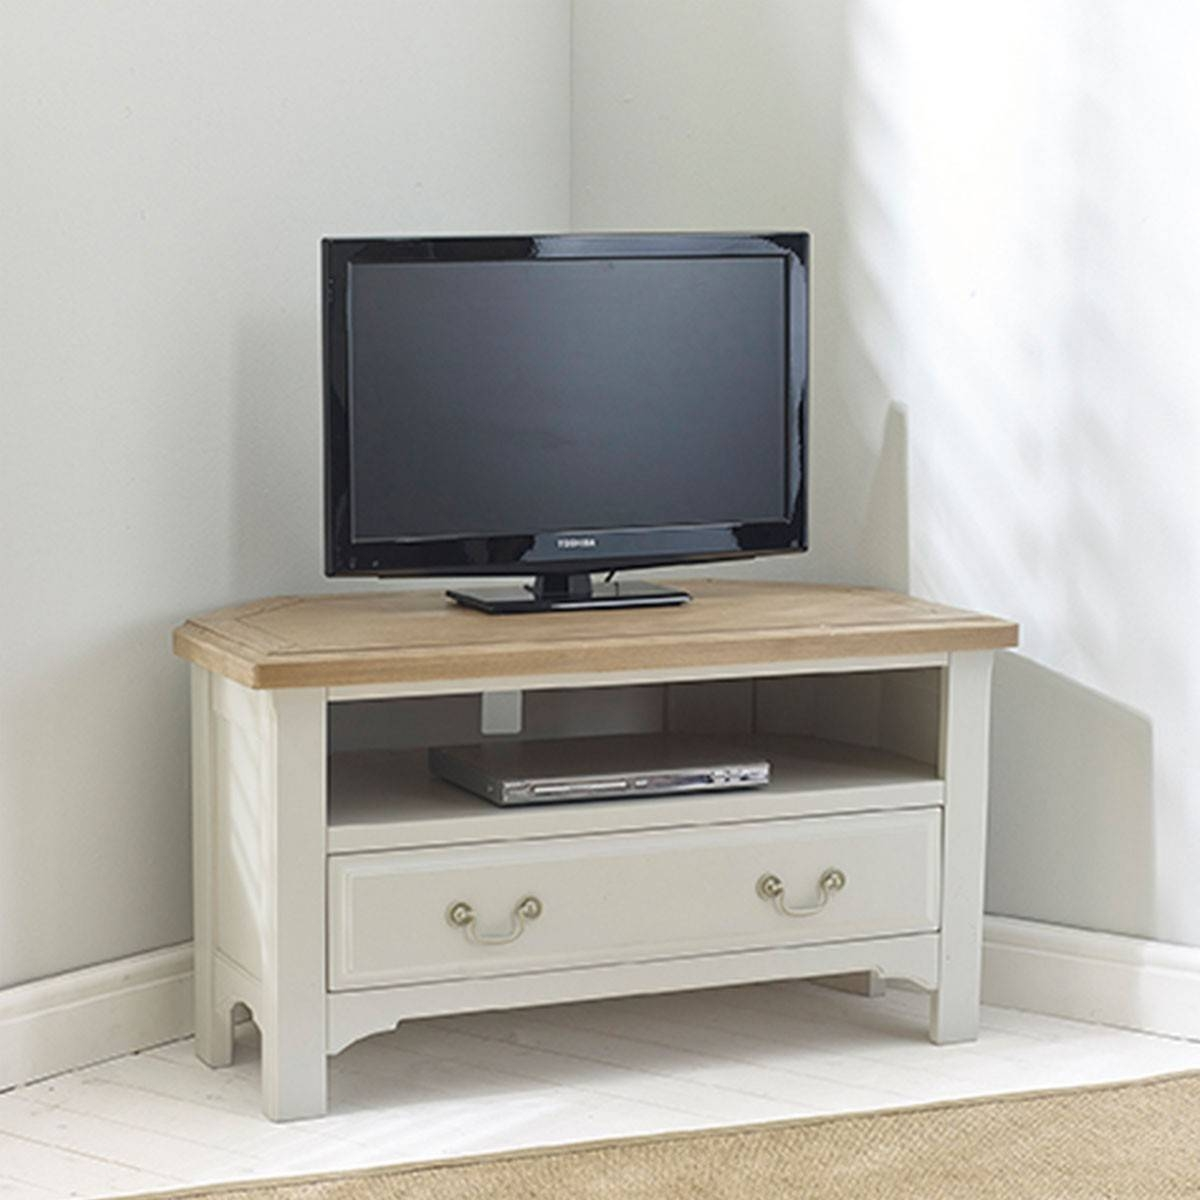 Hutch® - Buxton Light Grey Painted Corner Tv Unit intended for Corner Tv Units (Image 4 of 15)